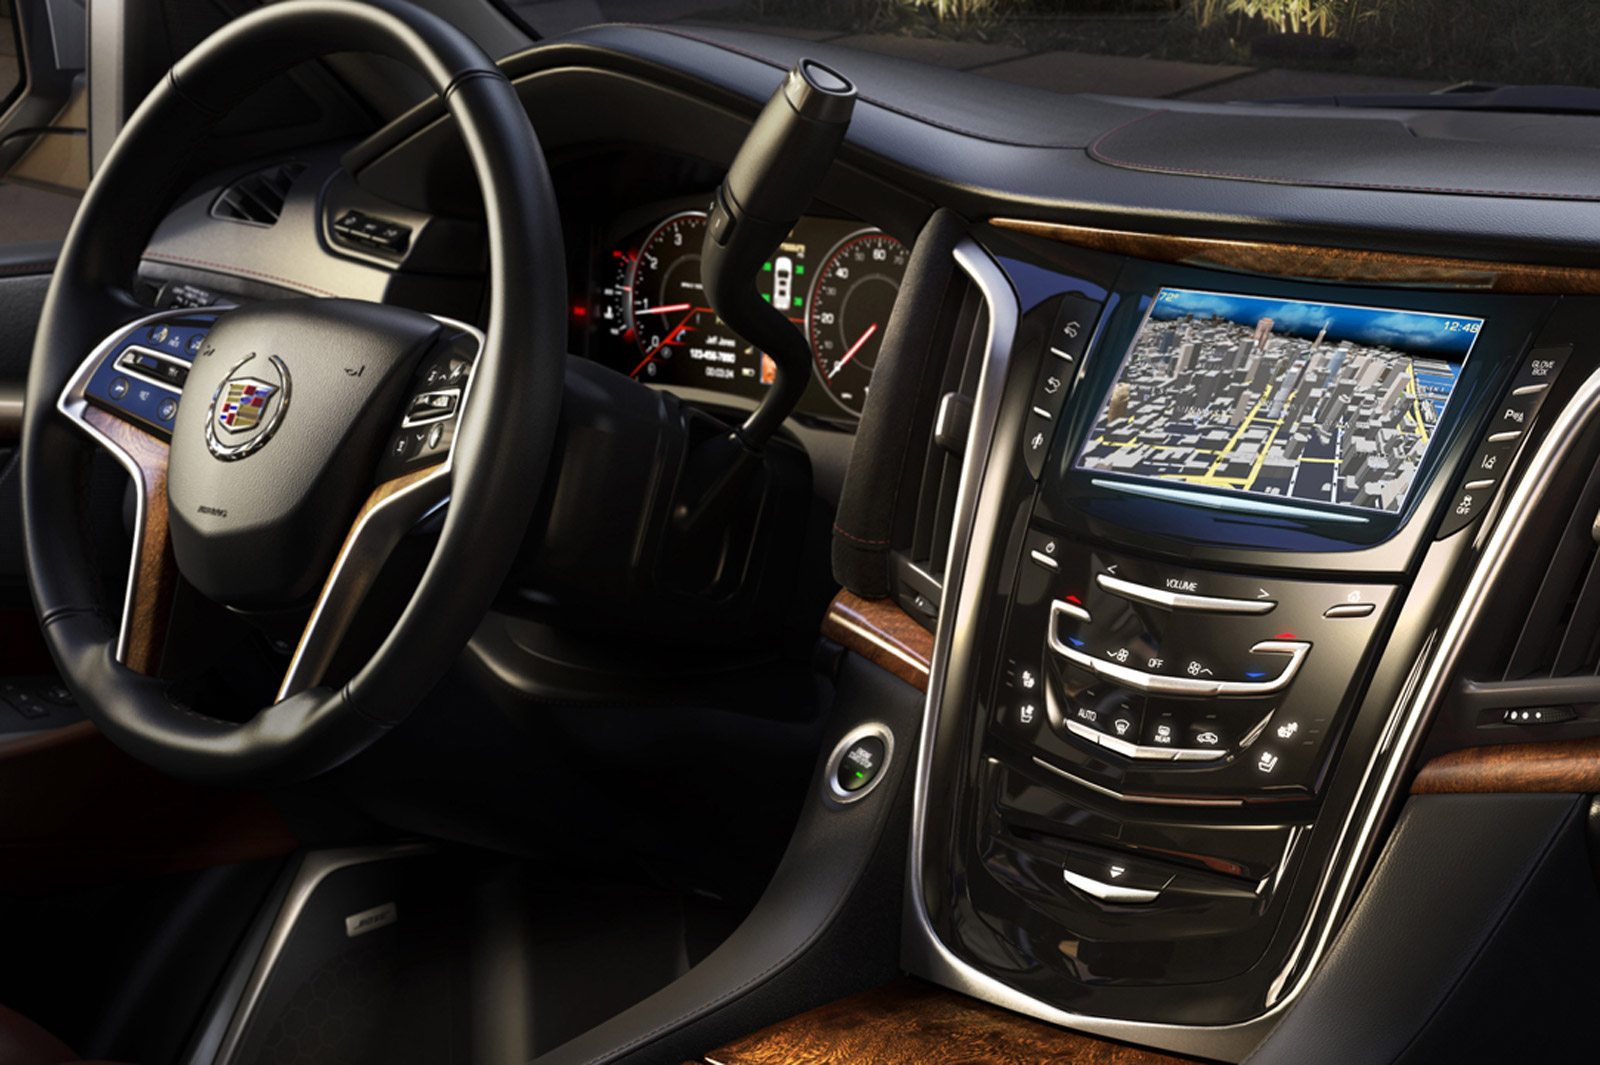 2015 cadillac escalade s interior revealed in latest teaser. Black Bedroom Furniture Sets. Home Design Ideas